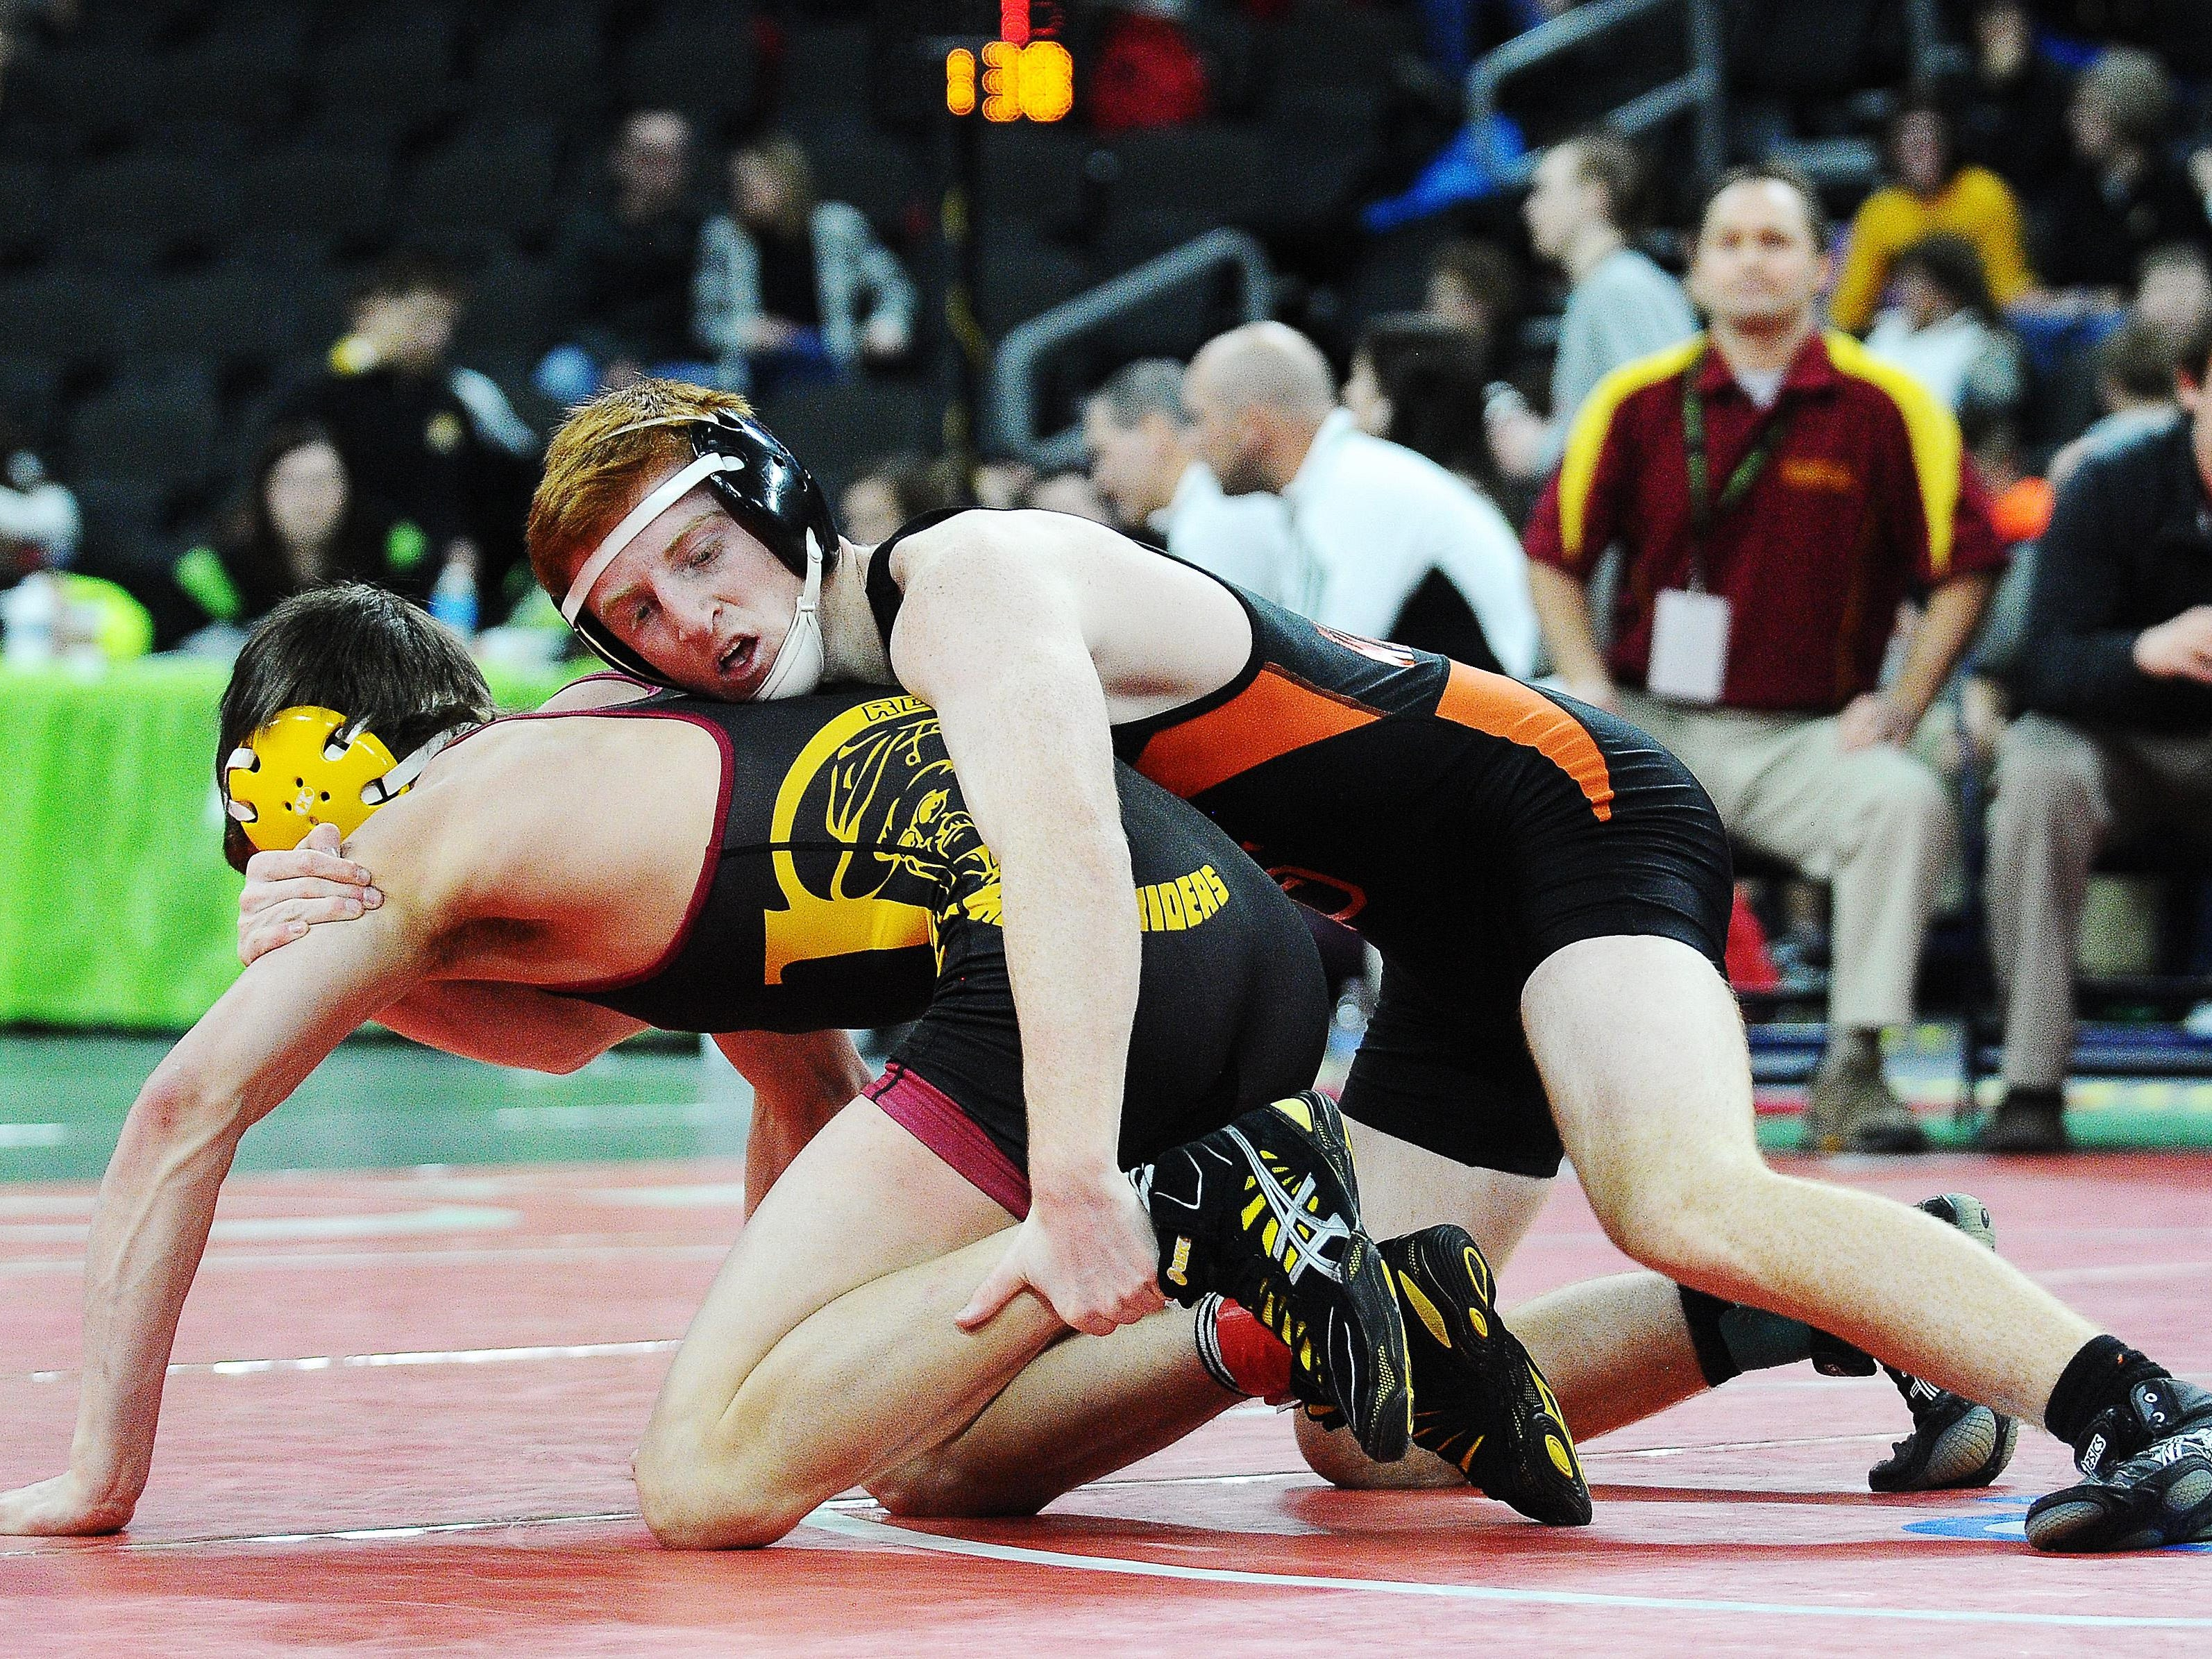 """Washington's Hunter O'Connor, top, wrestles Roosevelt's Carter Lohr during a 132-pound weight class match during the SDHSAA South Dakota State Class """"A"""" Wrestling Tournament on Friday, Feb. 27, 2015, at the Denny Sanford Premier Center in Sioux Falls, S.D."""